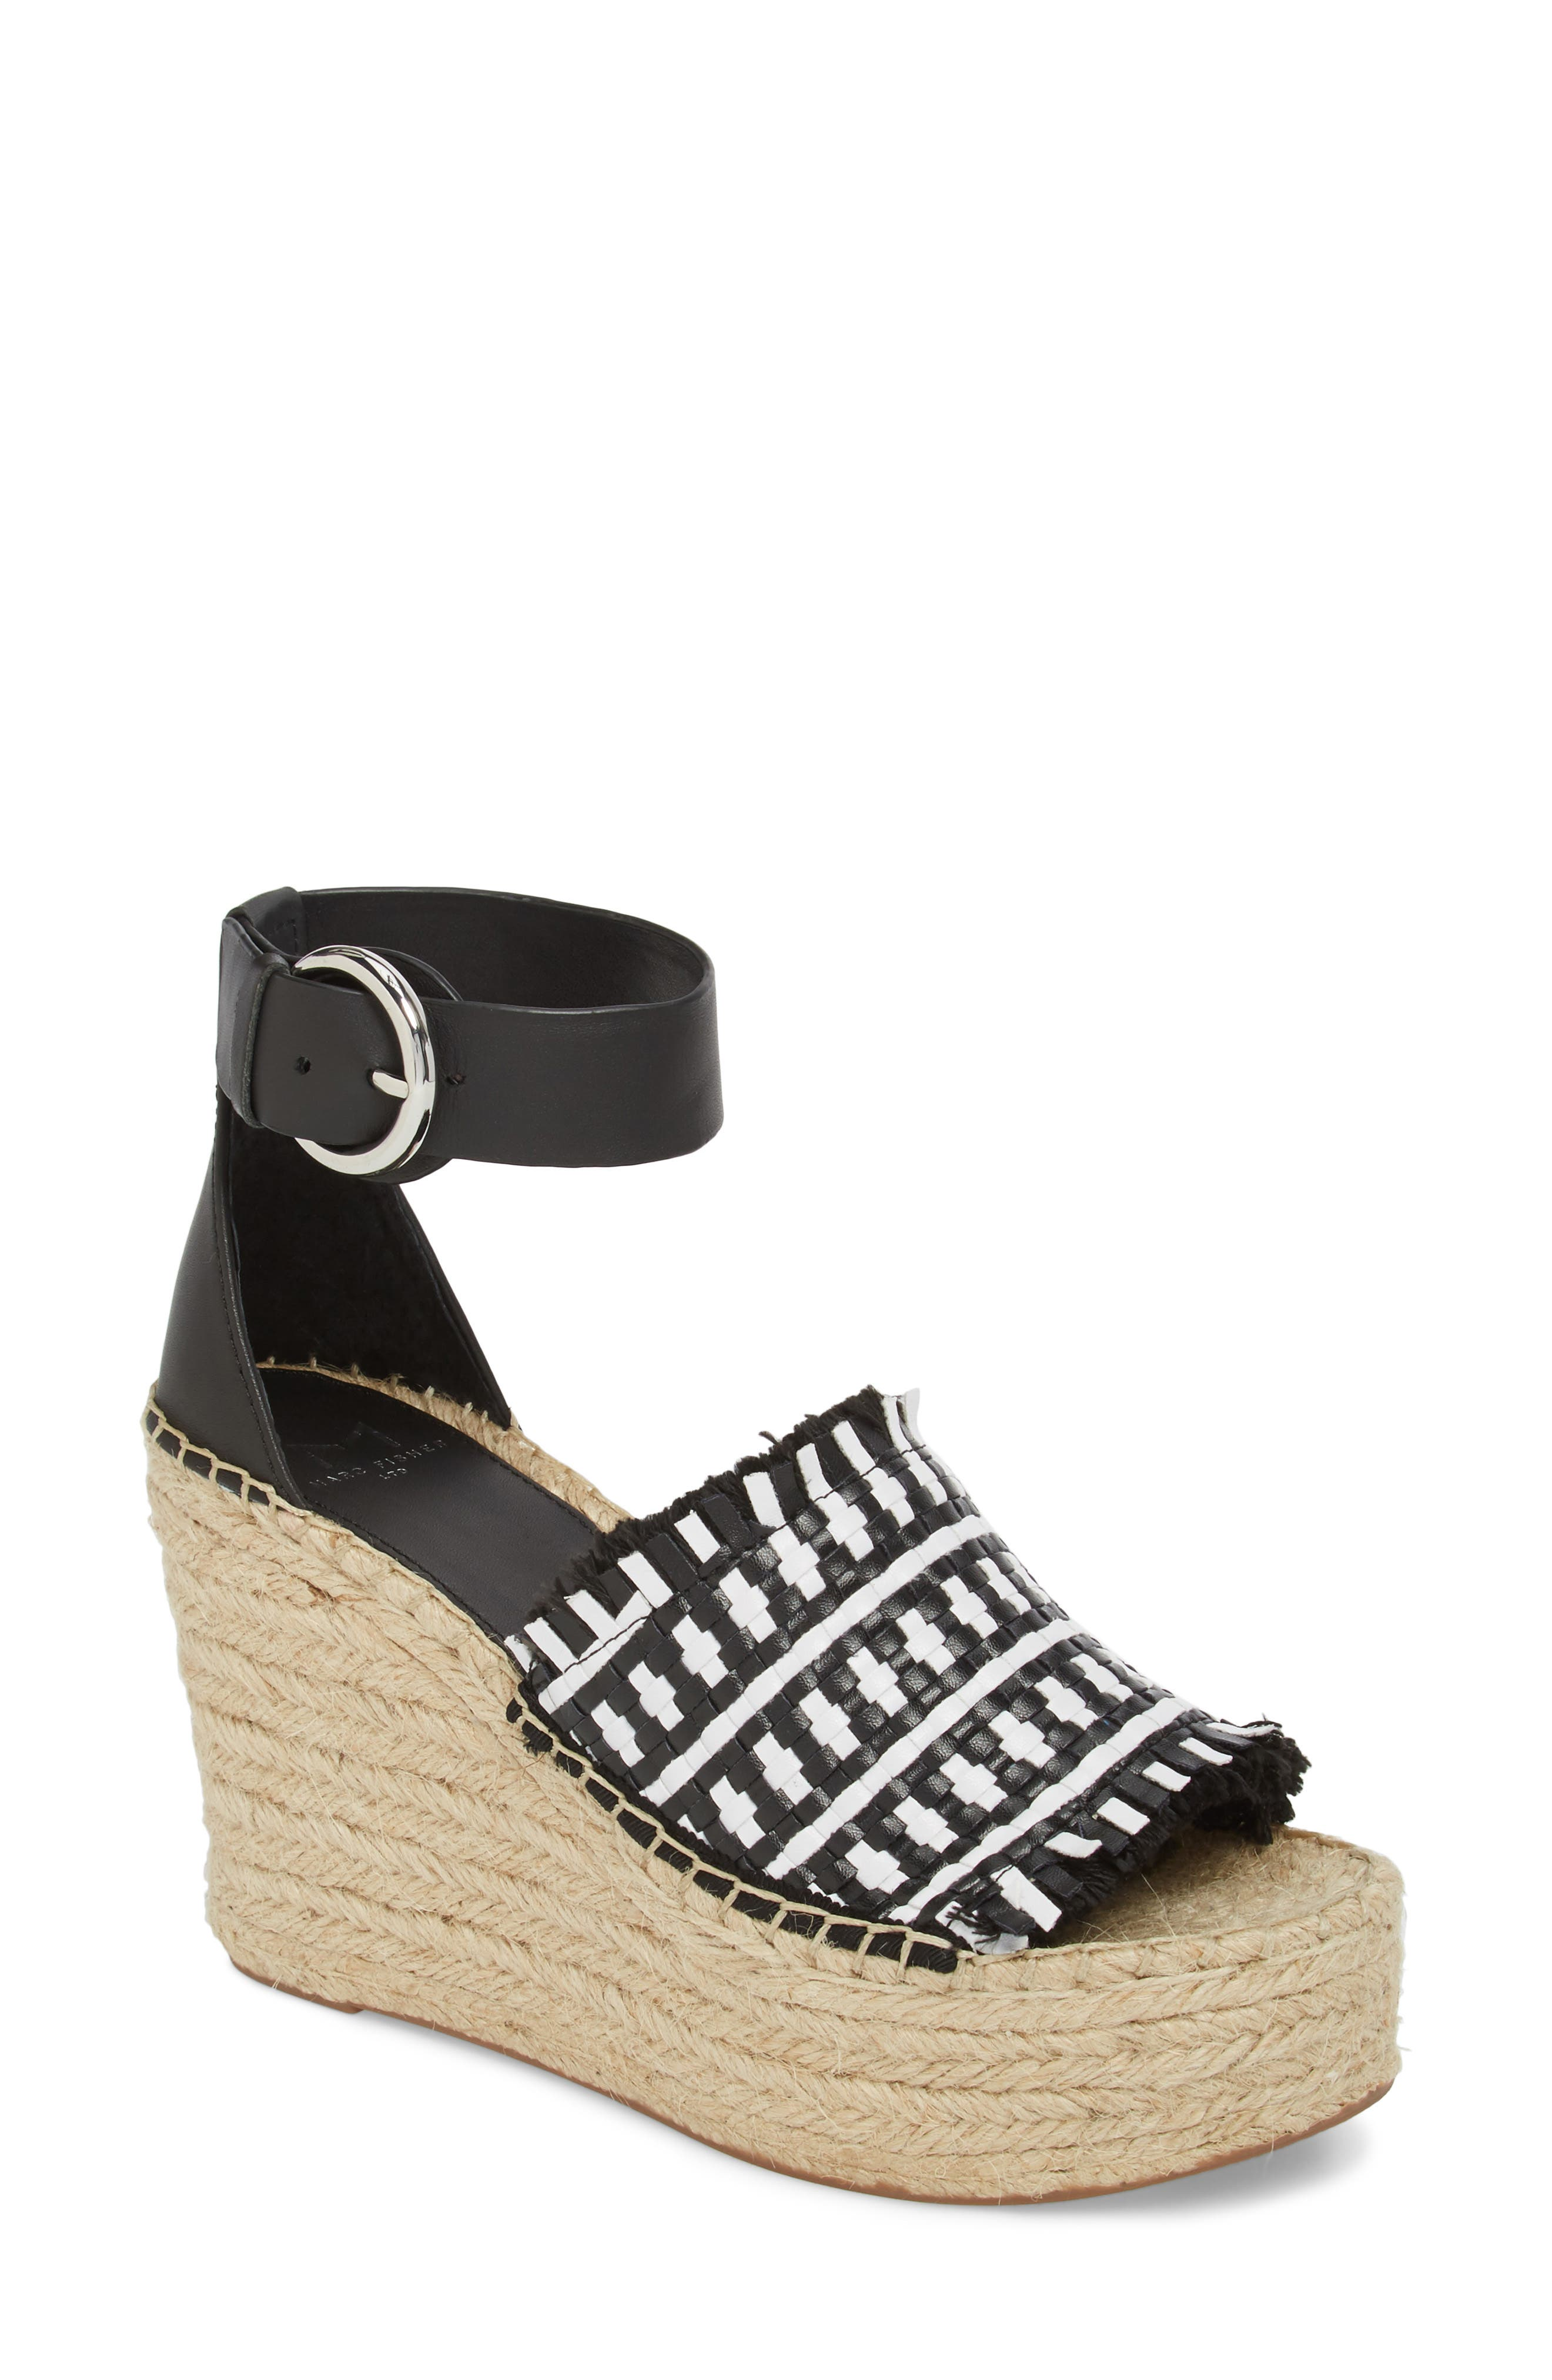 Andrew Espadrille Wedge Sandal,                         Main,                         color,